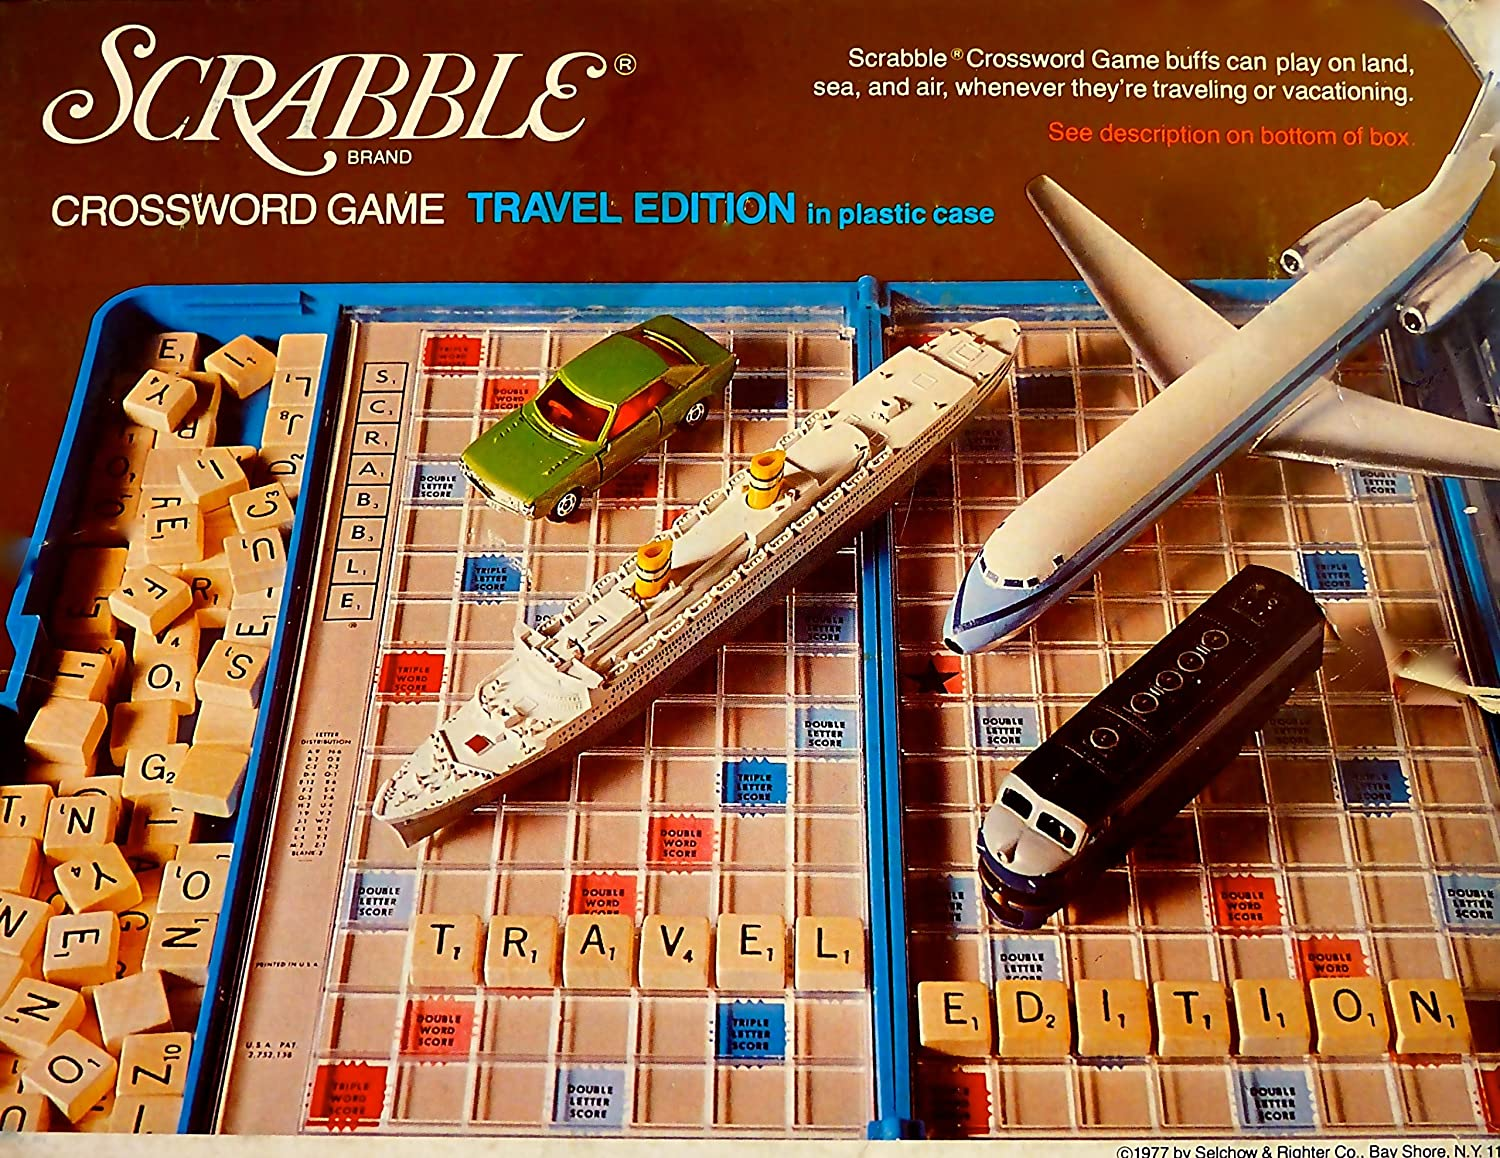 Scrabble Crossword Game 1977 Travel Edition by Selchow & Richter